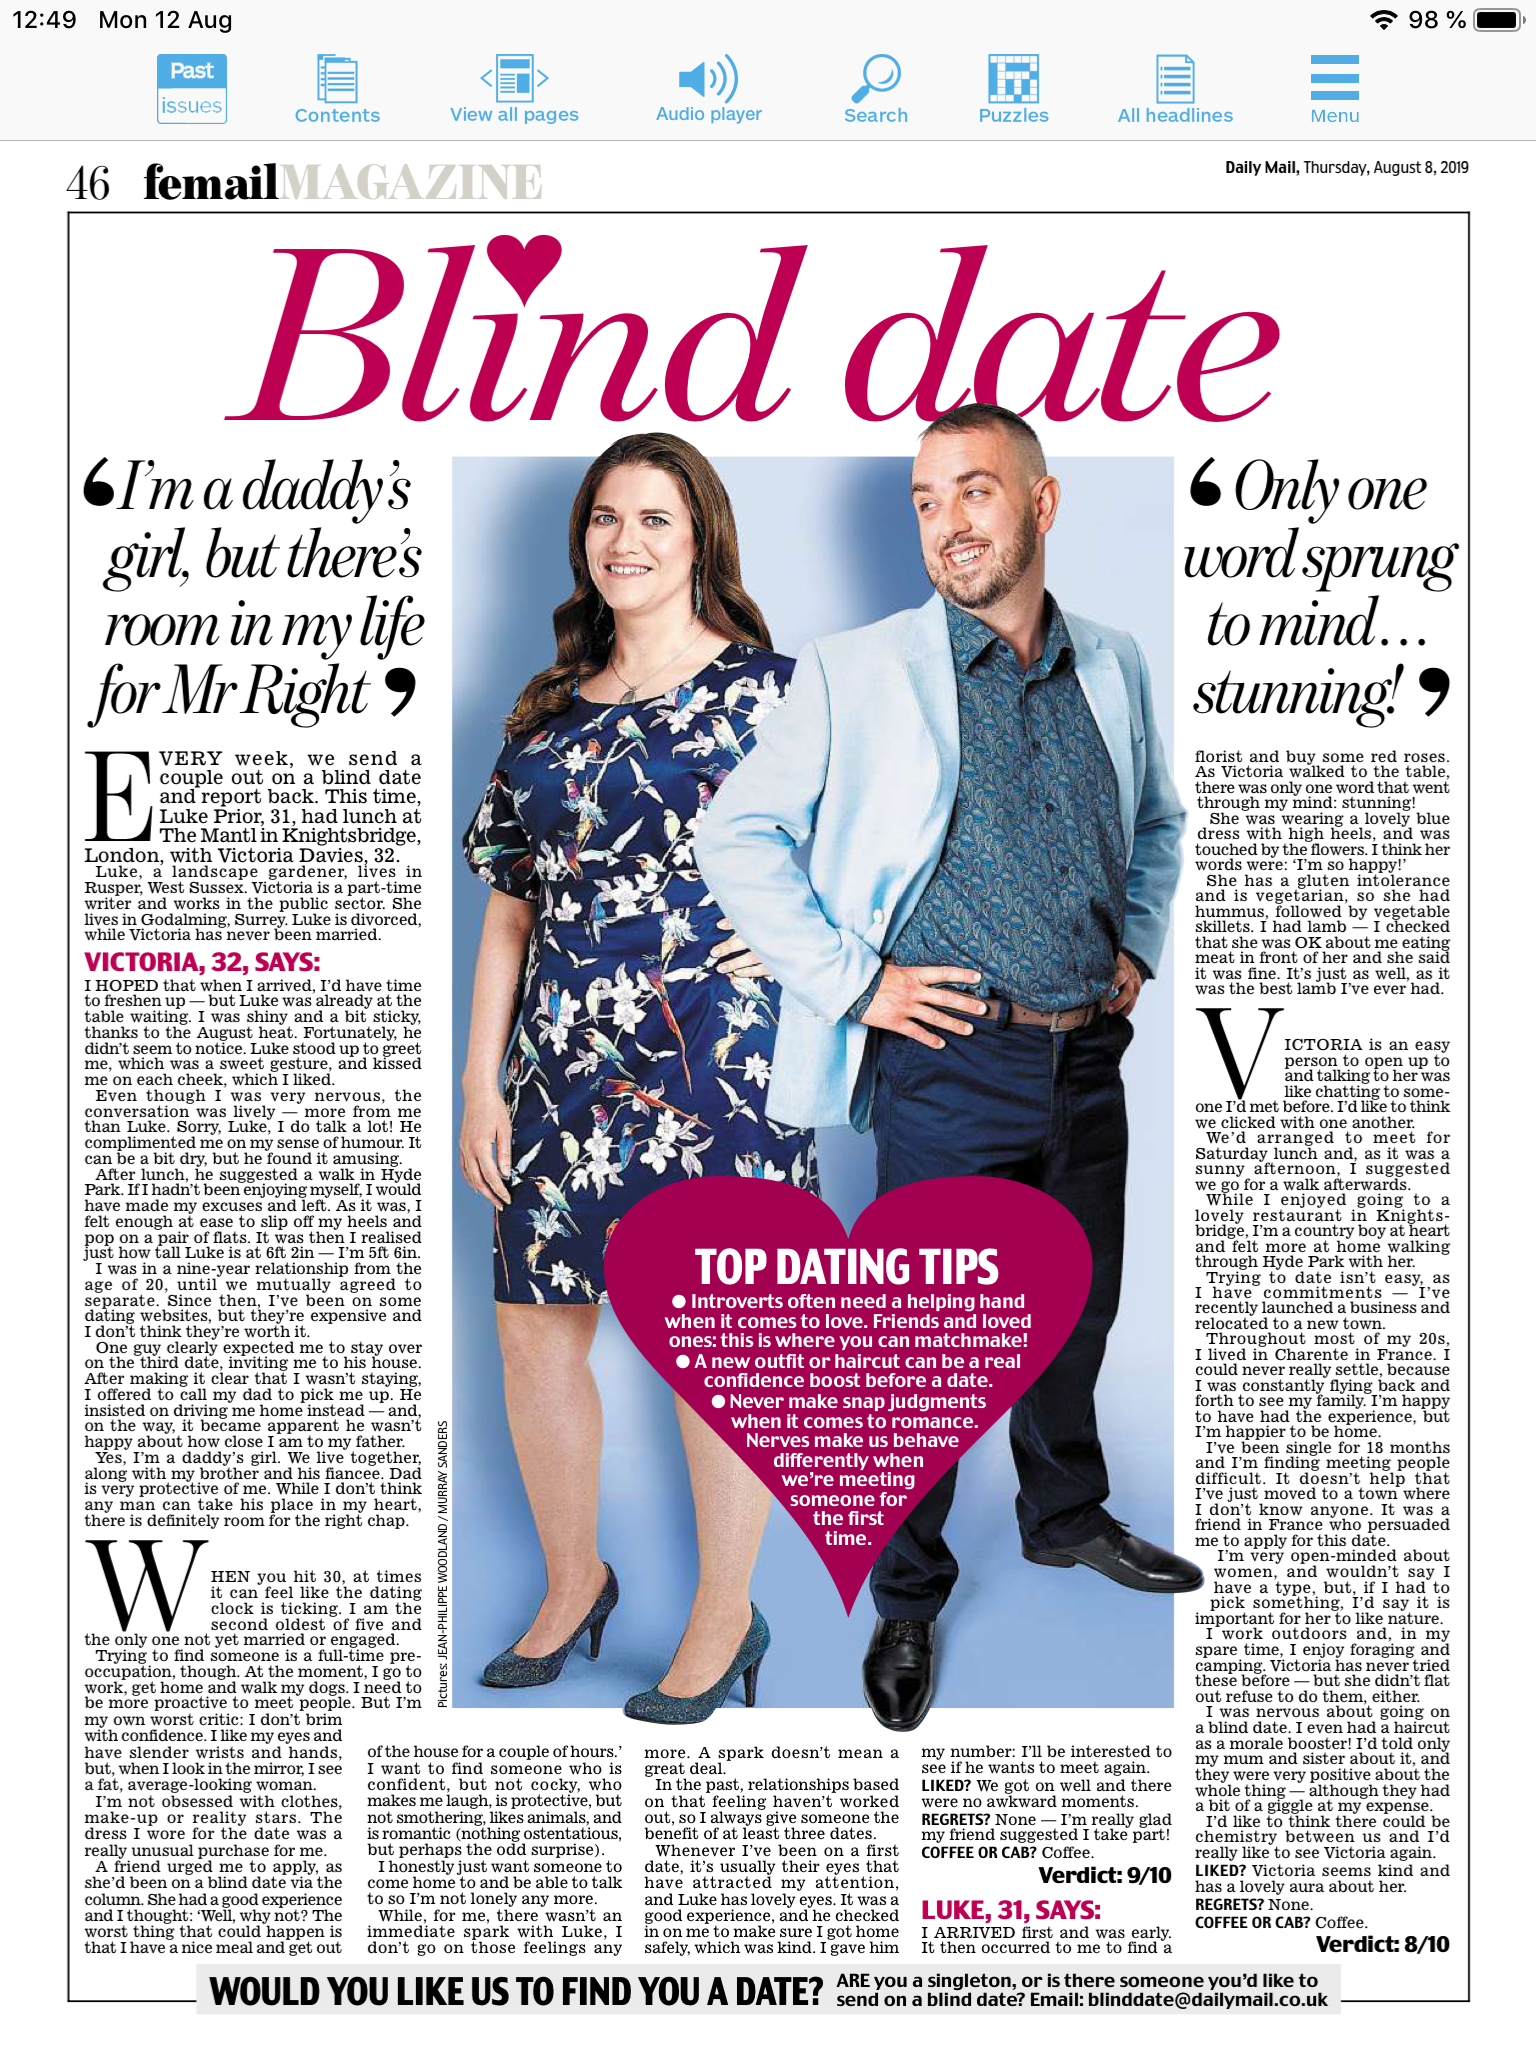 Daily Mail 08 08 19.png